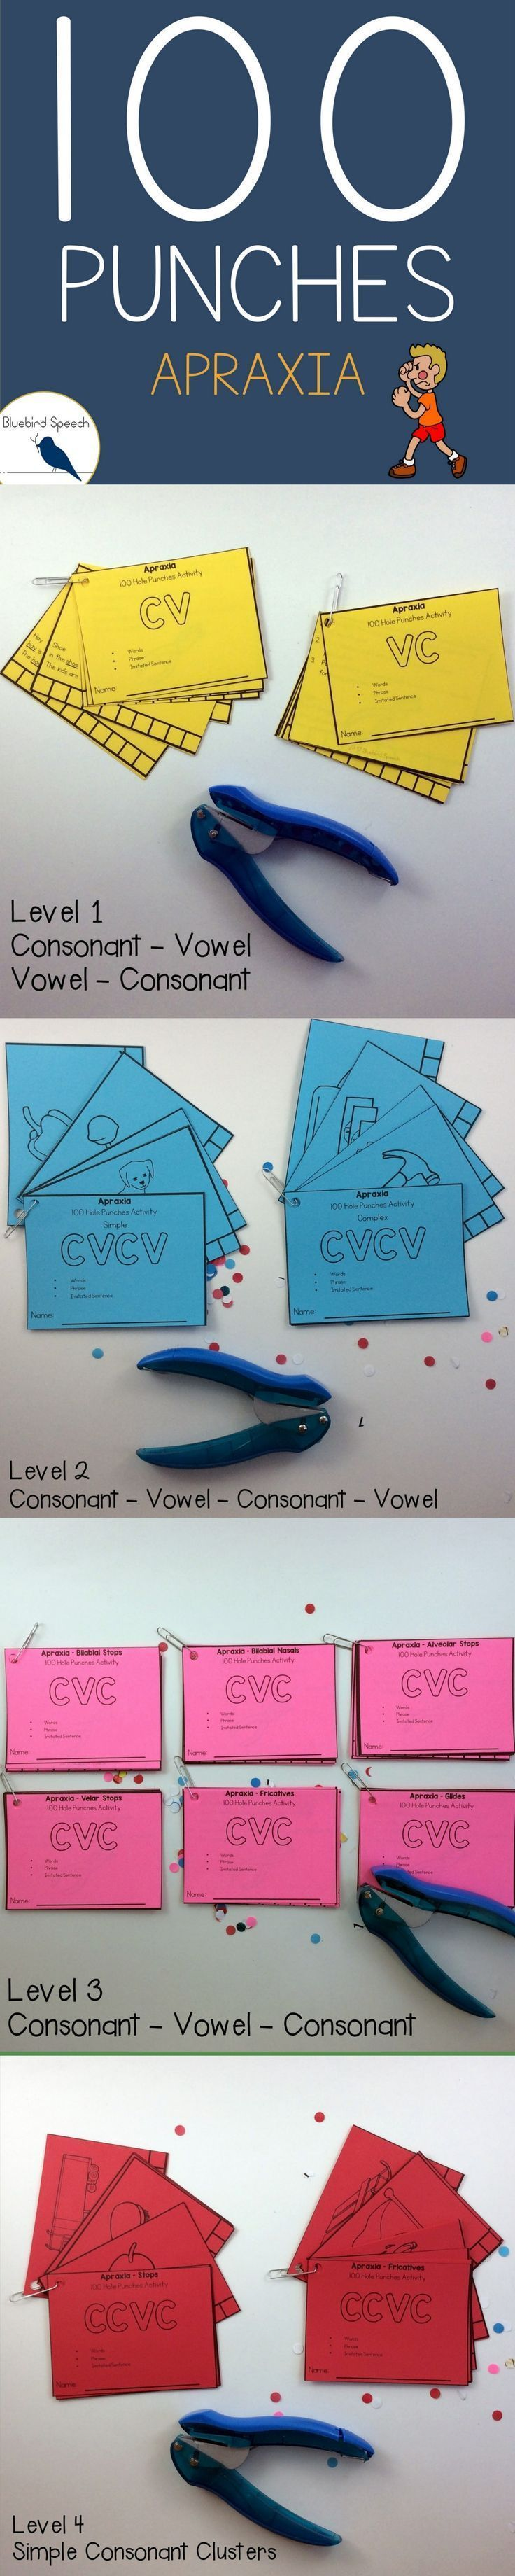 Apraxia | Speech Therapy | Self-Monitoring | Multiple Repetitions | Using a hole punch, students track their own repetitions of CV, VC, CVCV, CVC, and CCVC syllable shapes depending on their level in the speech hierarchy.